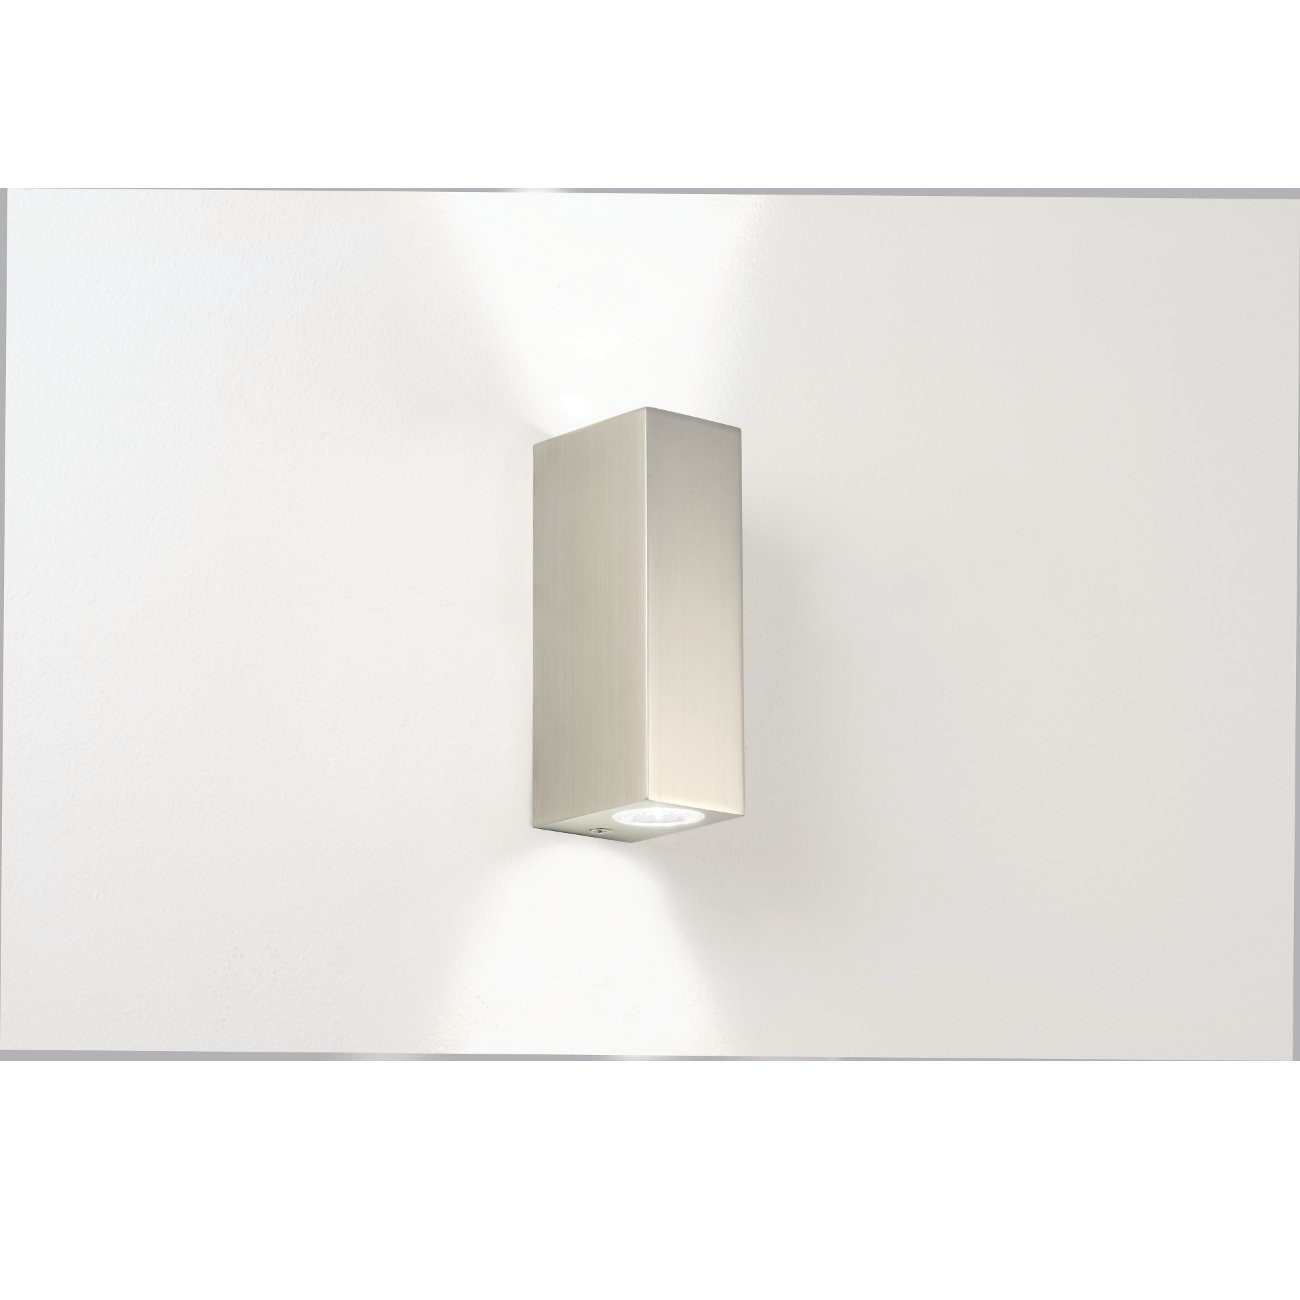 Moderne, eckige LED-Wandleuchte IP44 als Up- / Downlight BLOC